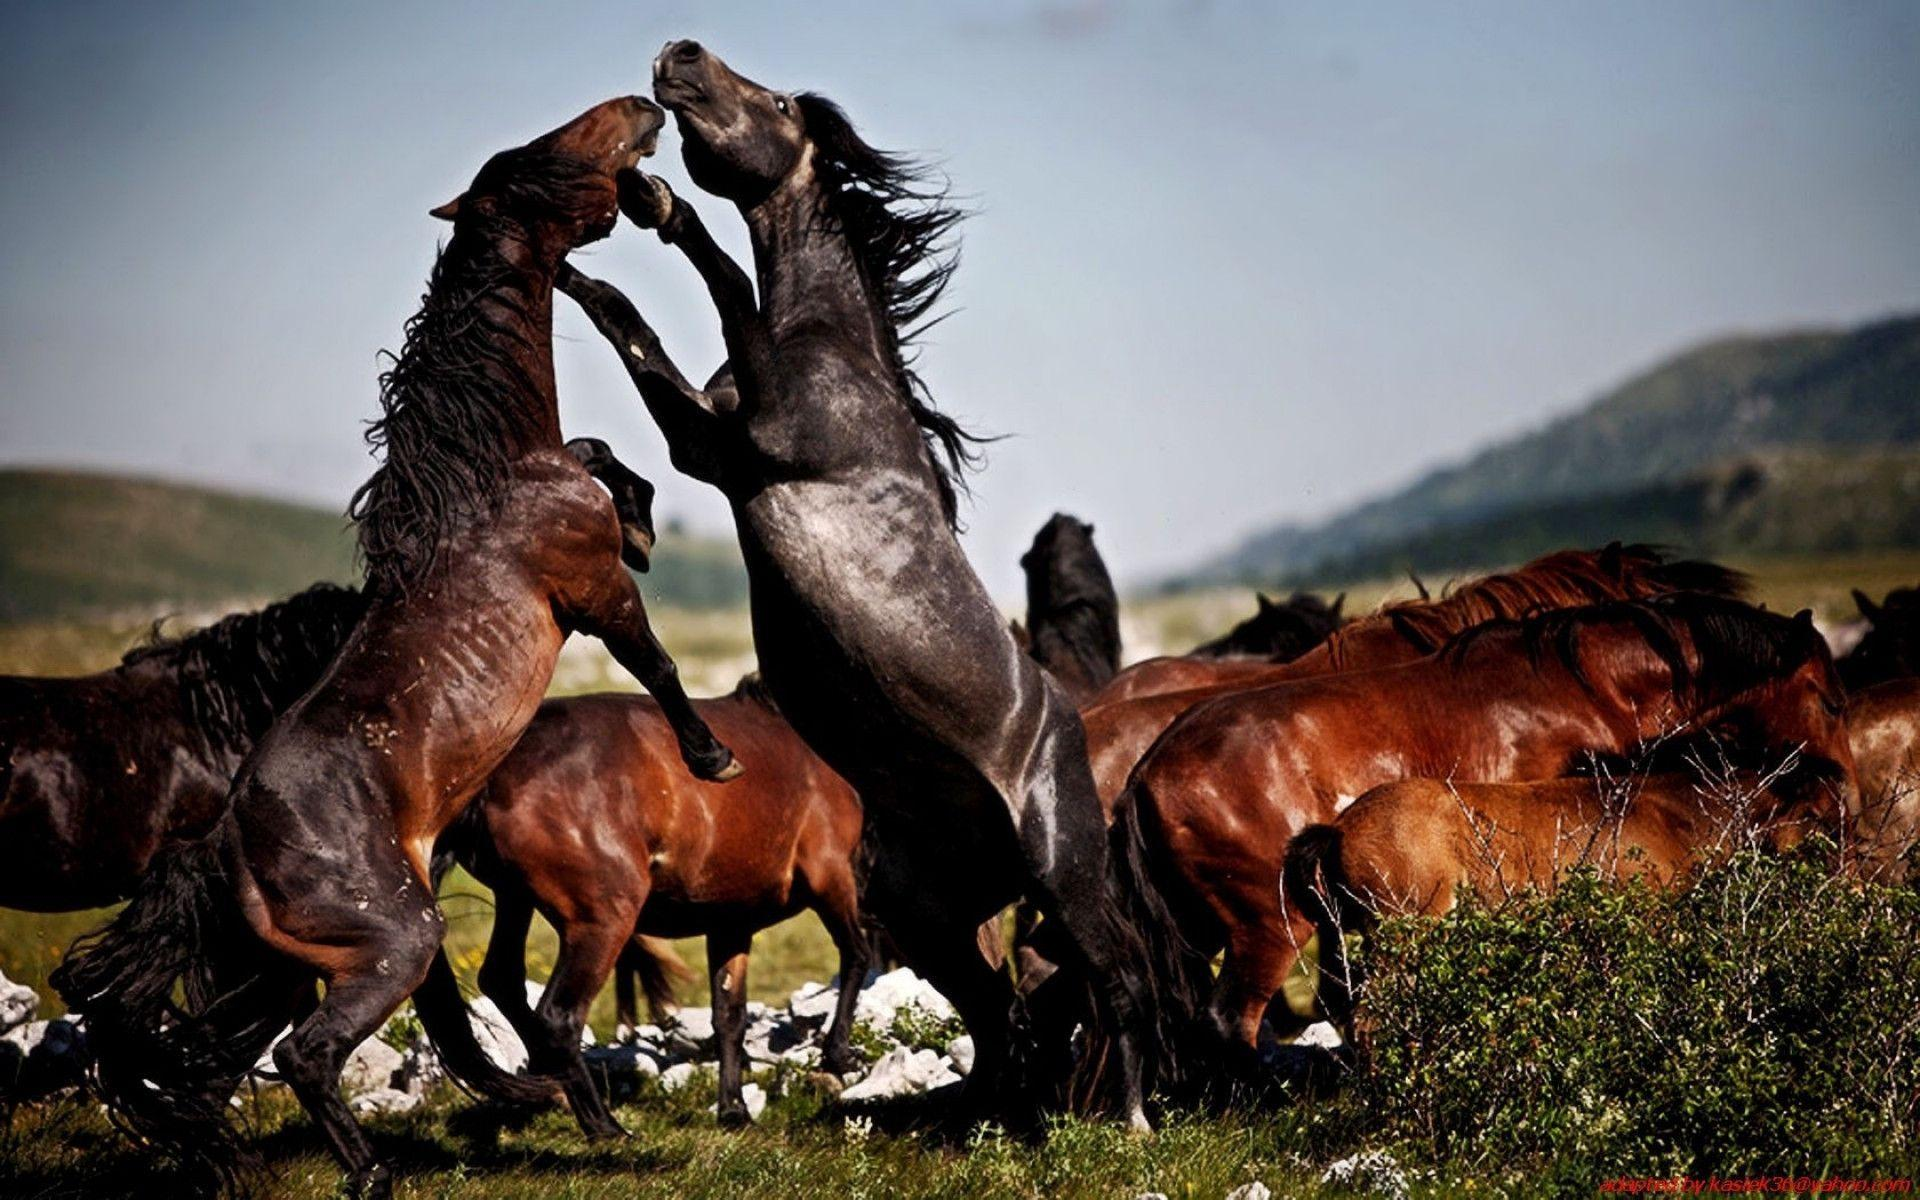 Wild horses wallpapers wallpaper cave - National geographic wild wallpapers ...